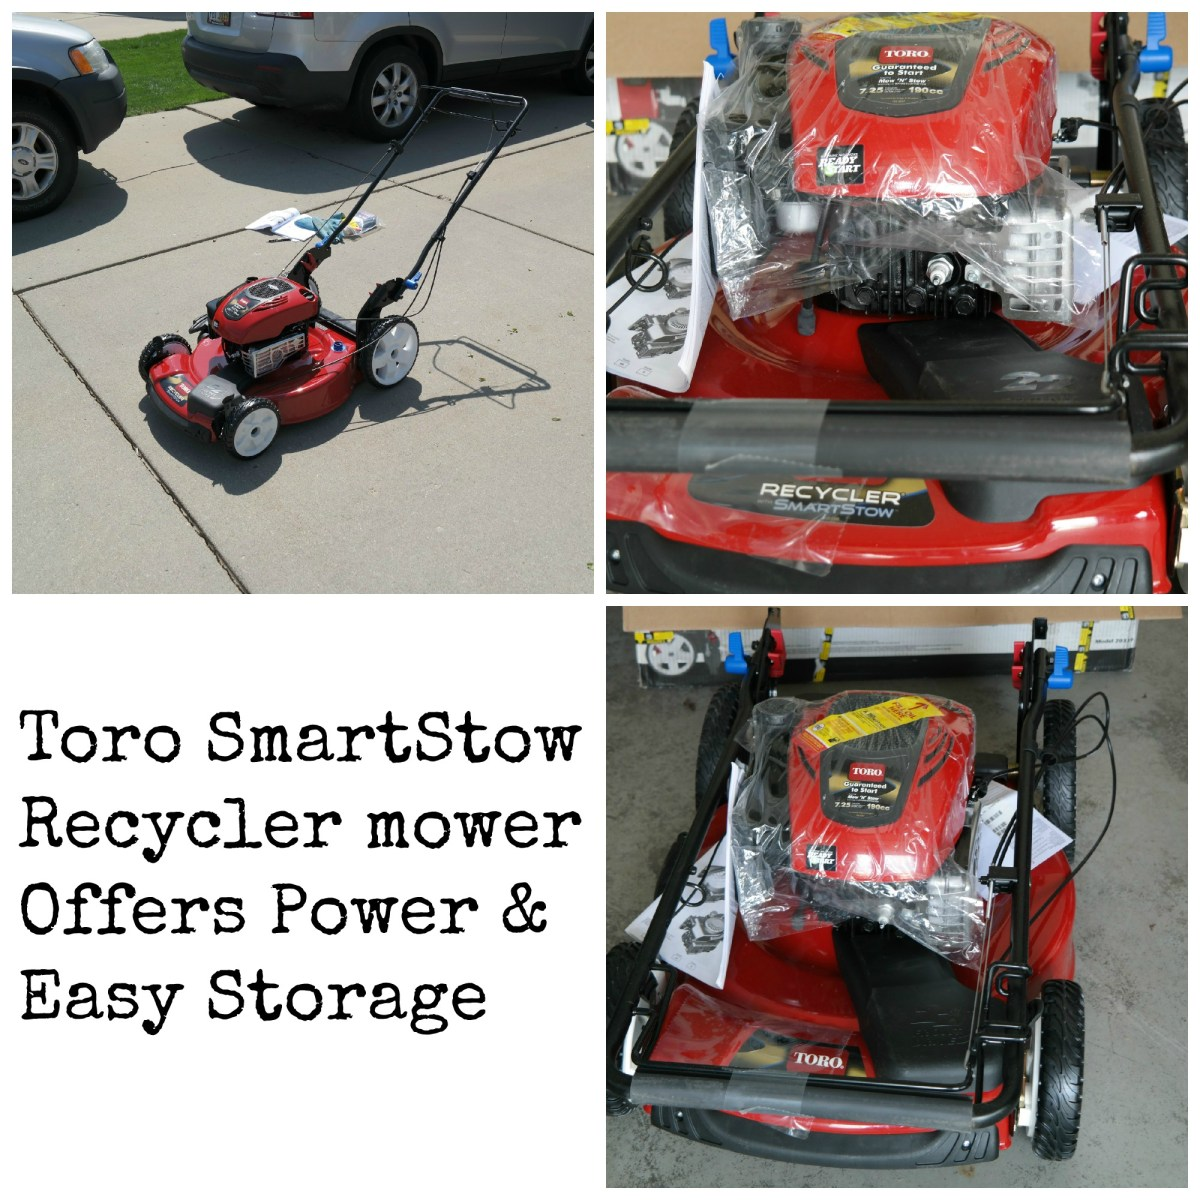 The Toro SmartStow Recycler Mower Offers Power & Easy Storage